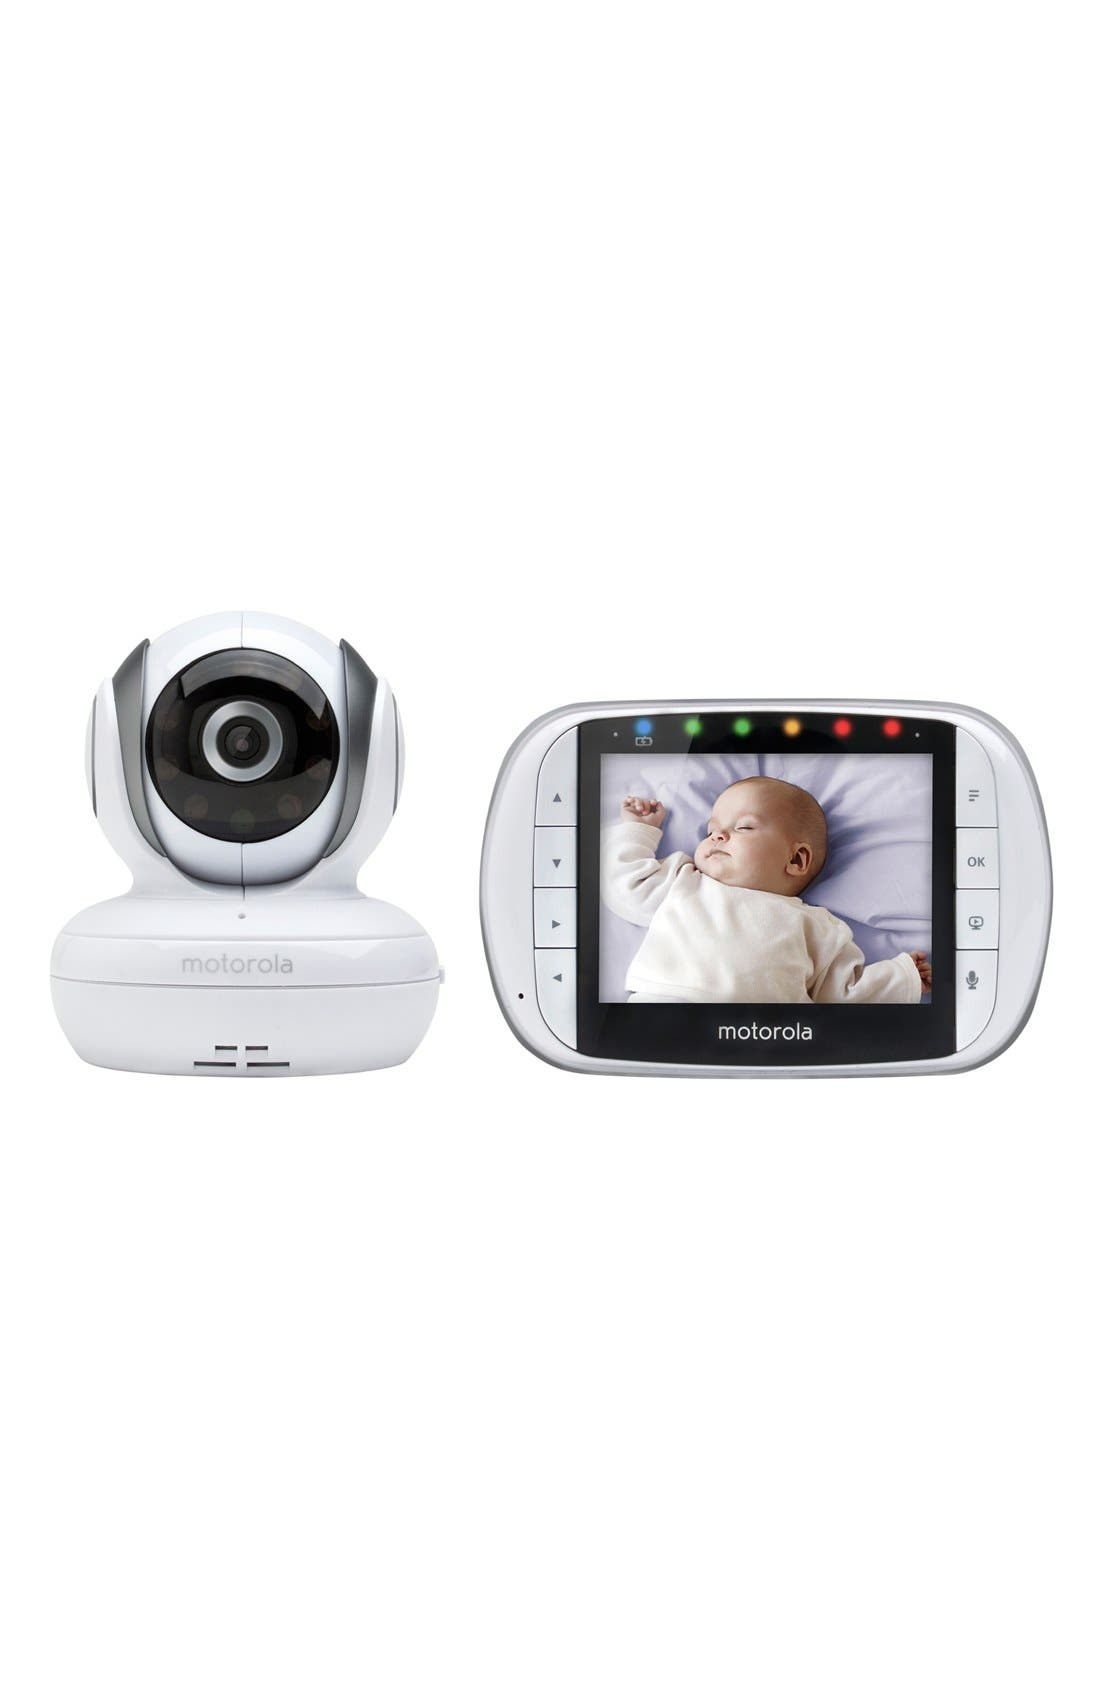 MBP36S Wireless Digital Infrared Video Baby Monitor,                             Main thumbnail 1, color,                             100